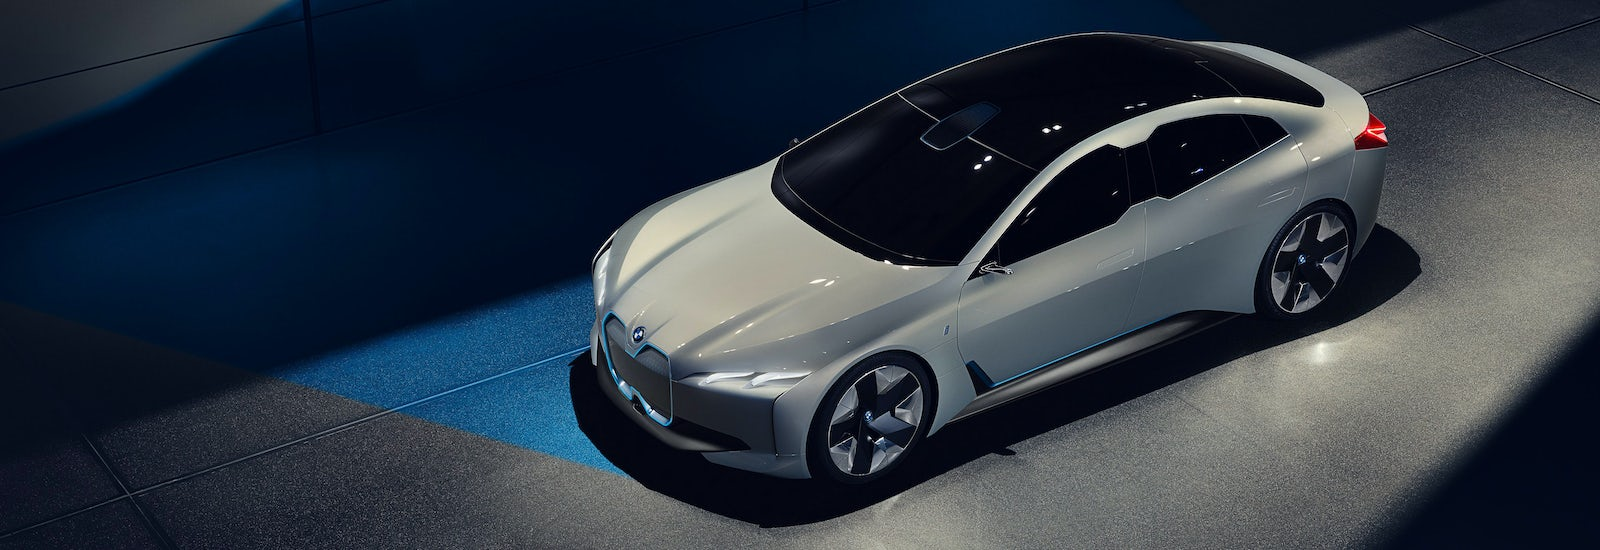 2021 Bmw I5 Price Specs And Release Date Carwow